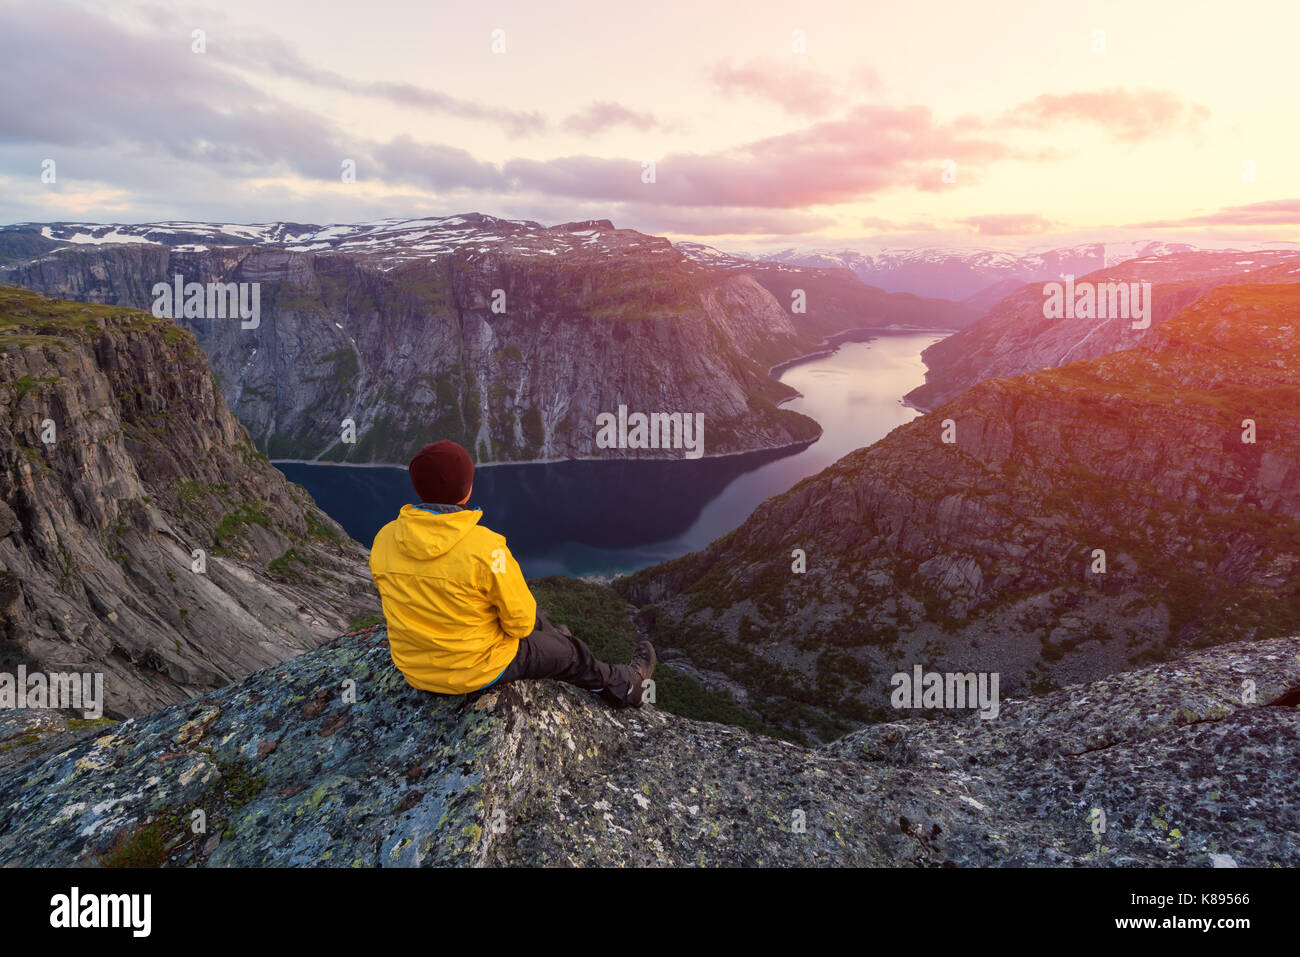 Alone tourist on Trolltunga rock - most spectacular and famous scenic cliff in Norway - Stock Image